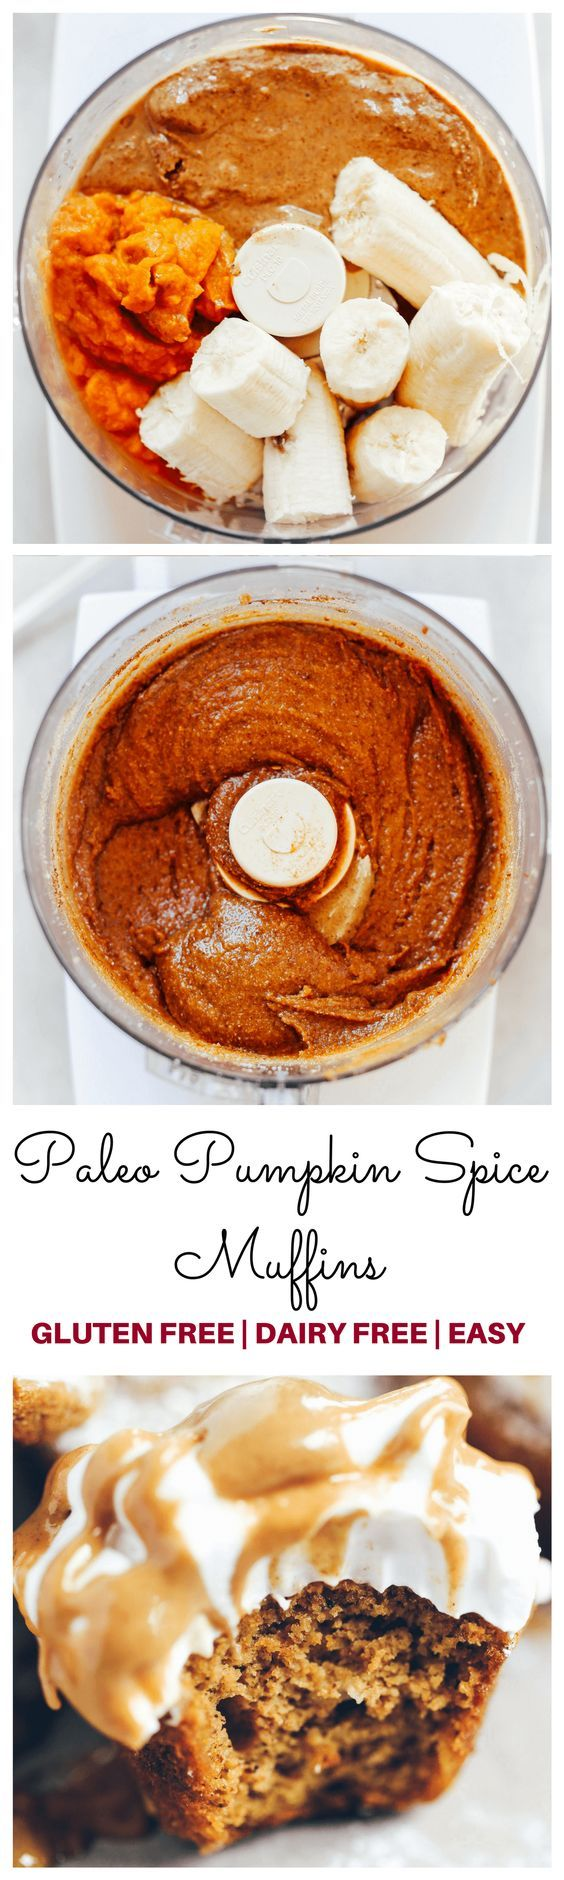 Paleo Pumpkin Spice Protein Muffins combines pumpkin, almond butter, almond flour, banana, pure maple syrup and coconut flour for a healthy breakfast option. Made with all-natural pure maple syrup!